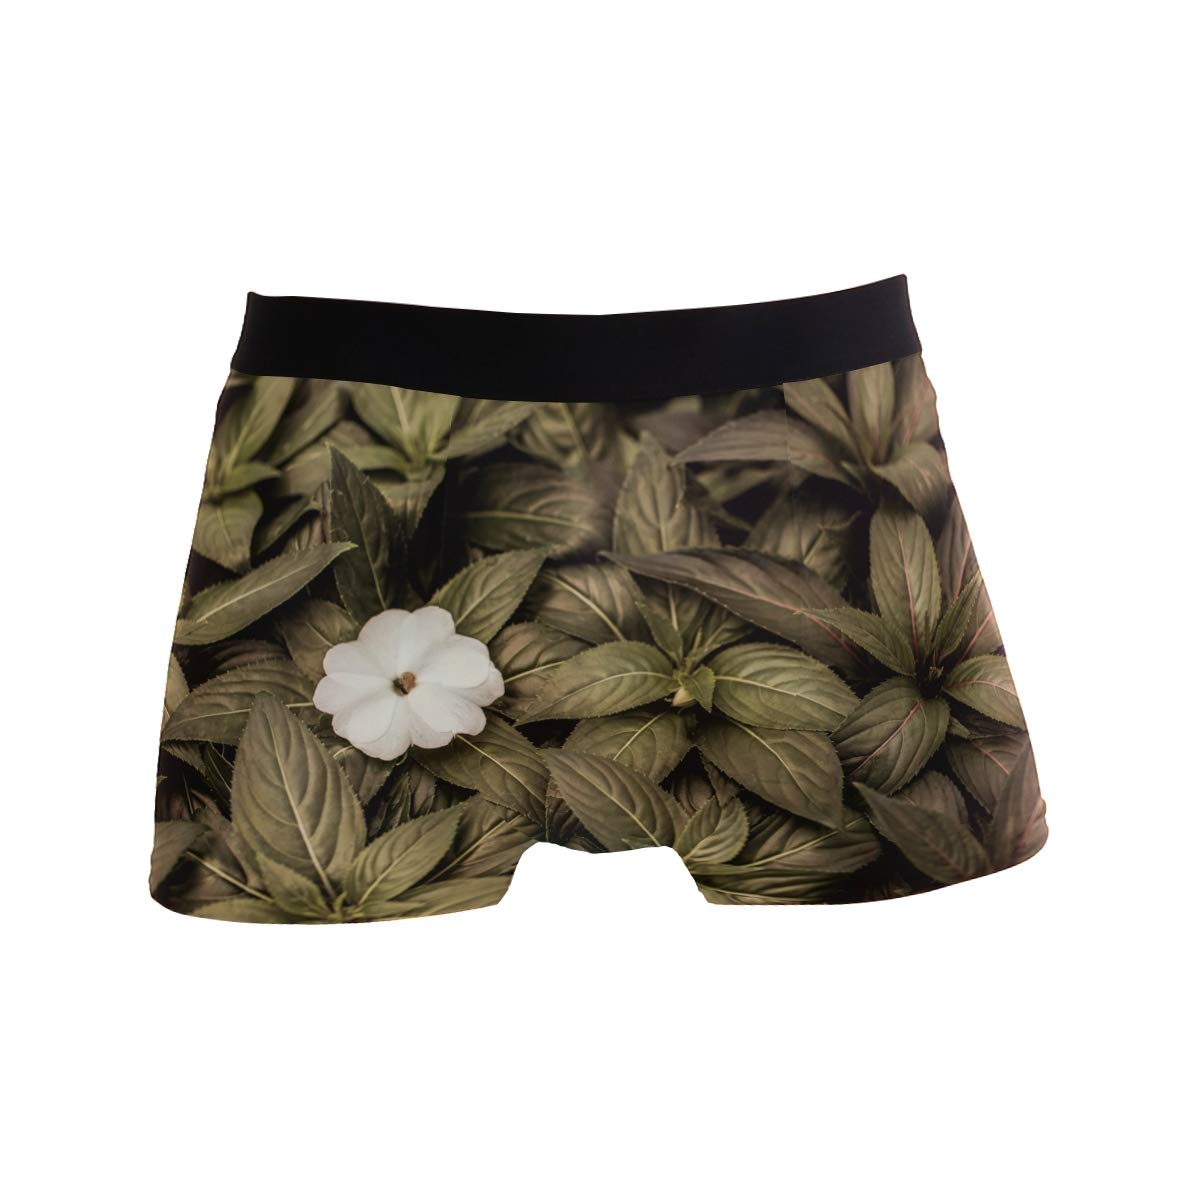 Hipster Unique Nature Lazy Green FlowersBoxer Briefs Mens Underwear Boys Breathable Stretch Low Rise